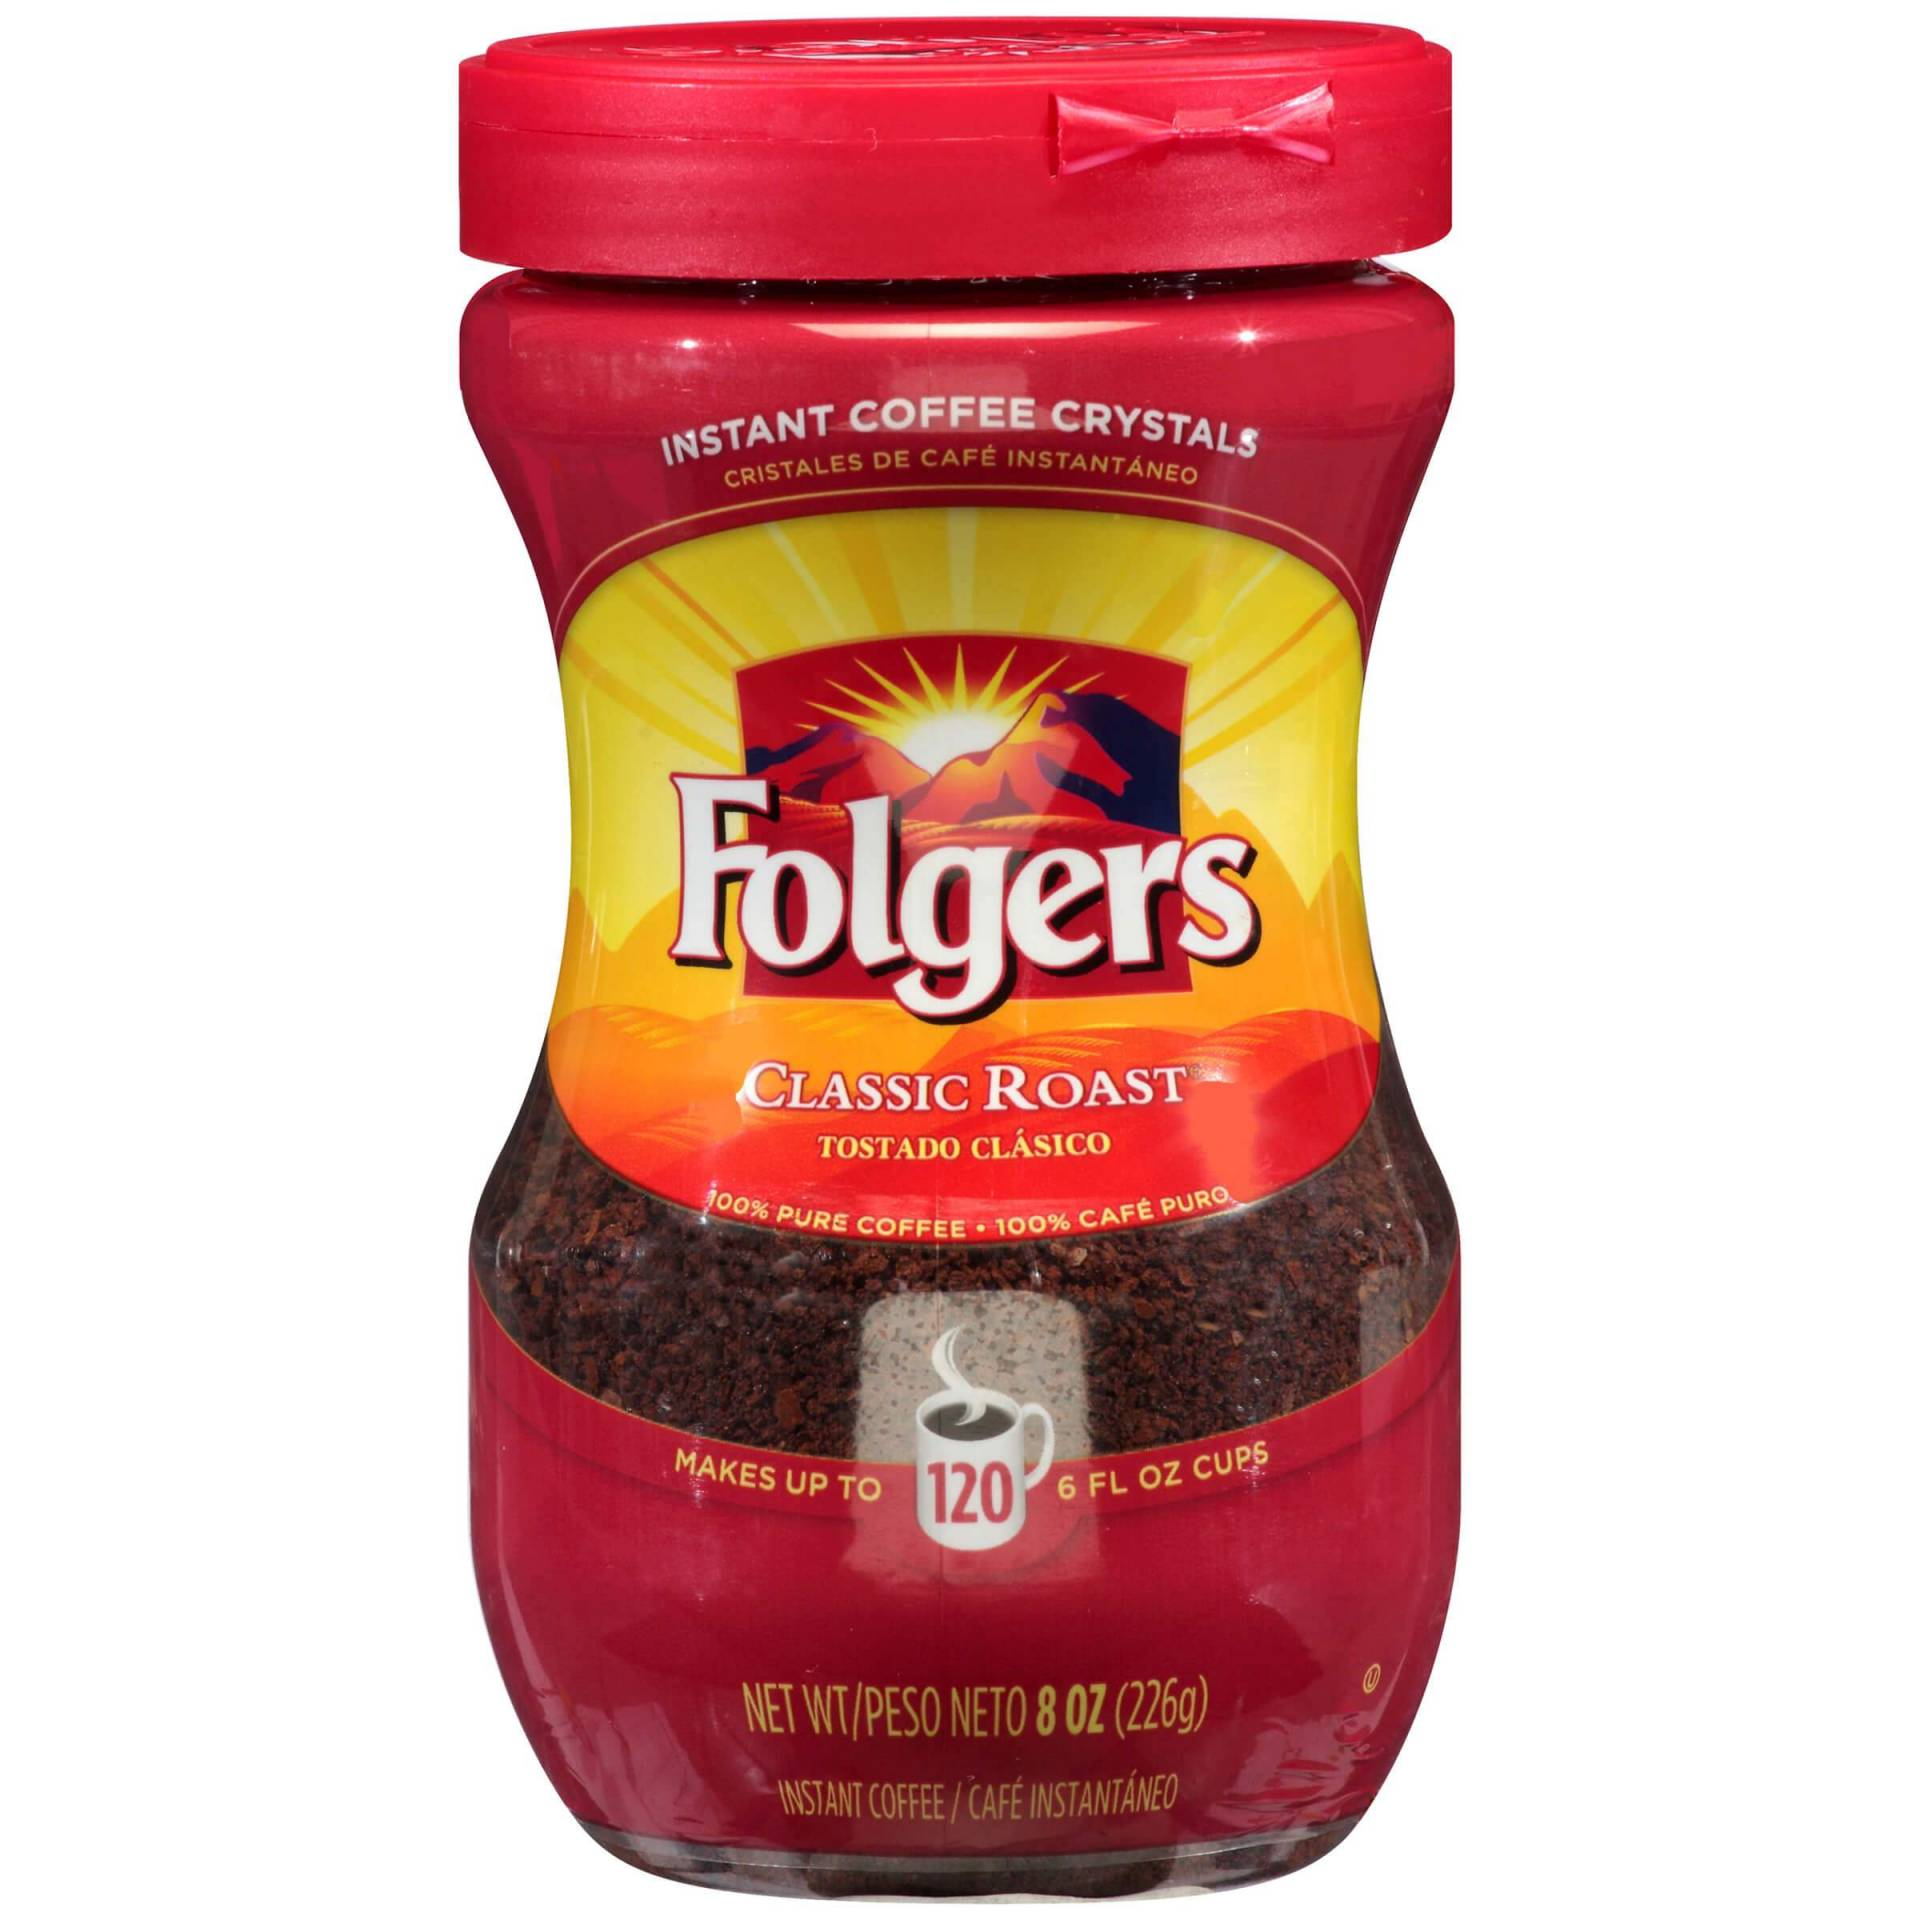 Folgers Classic Roast Instant Coffee Crystals, 8 Ounces, Case of 6 / Caffeinated from Vistar